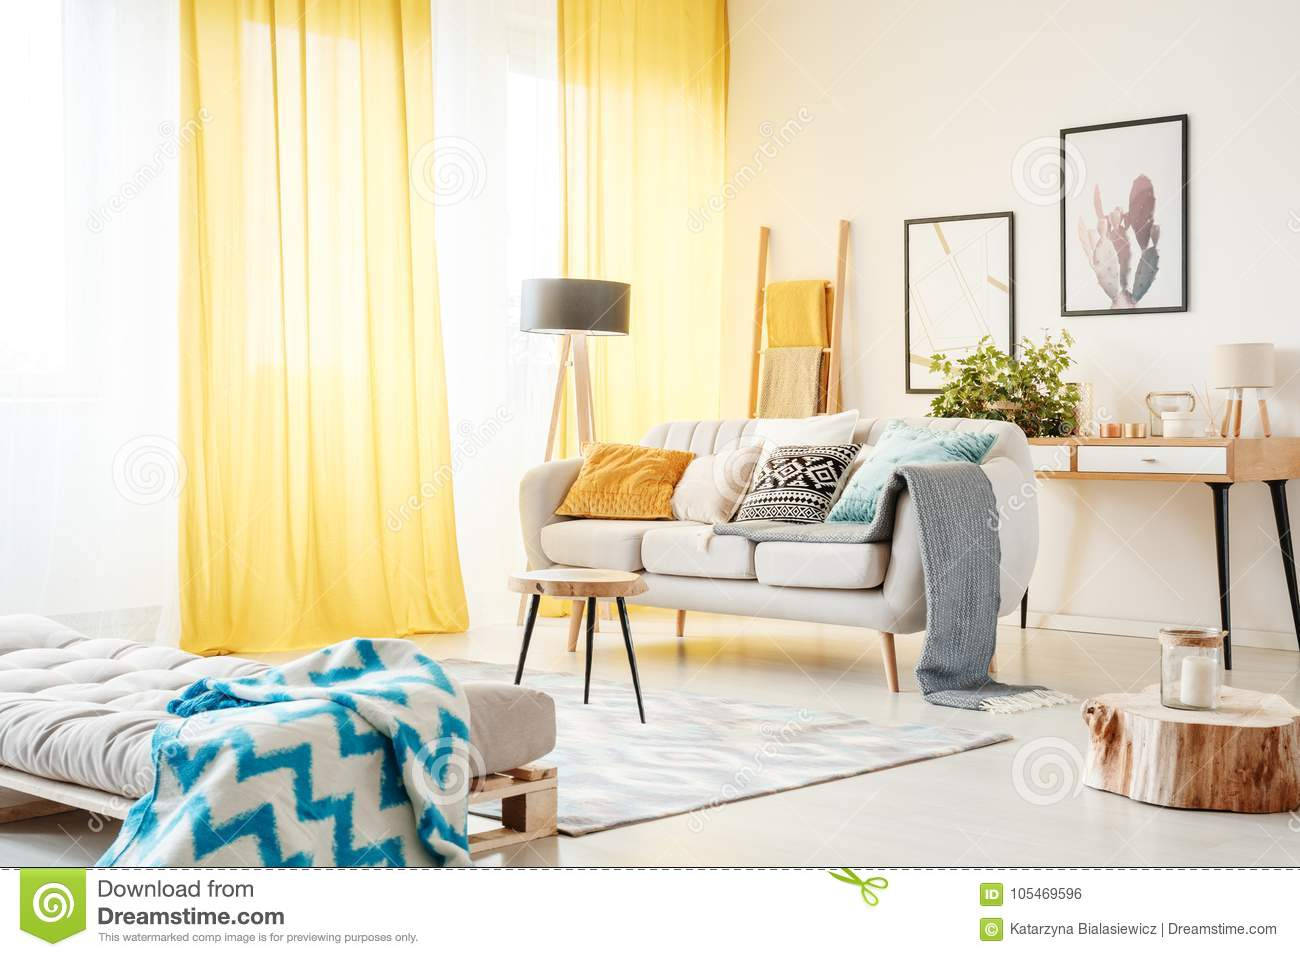 Living Room With Yellow Curtains Stock Photo - Image of interior ...